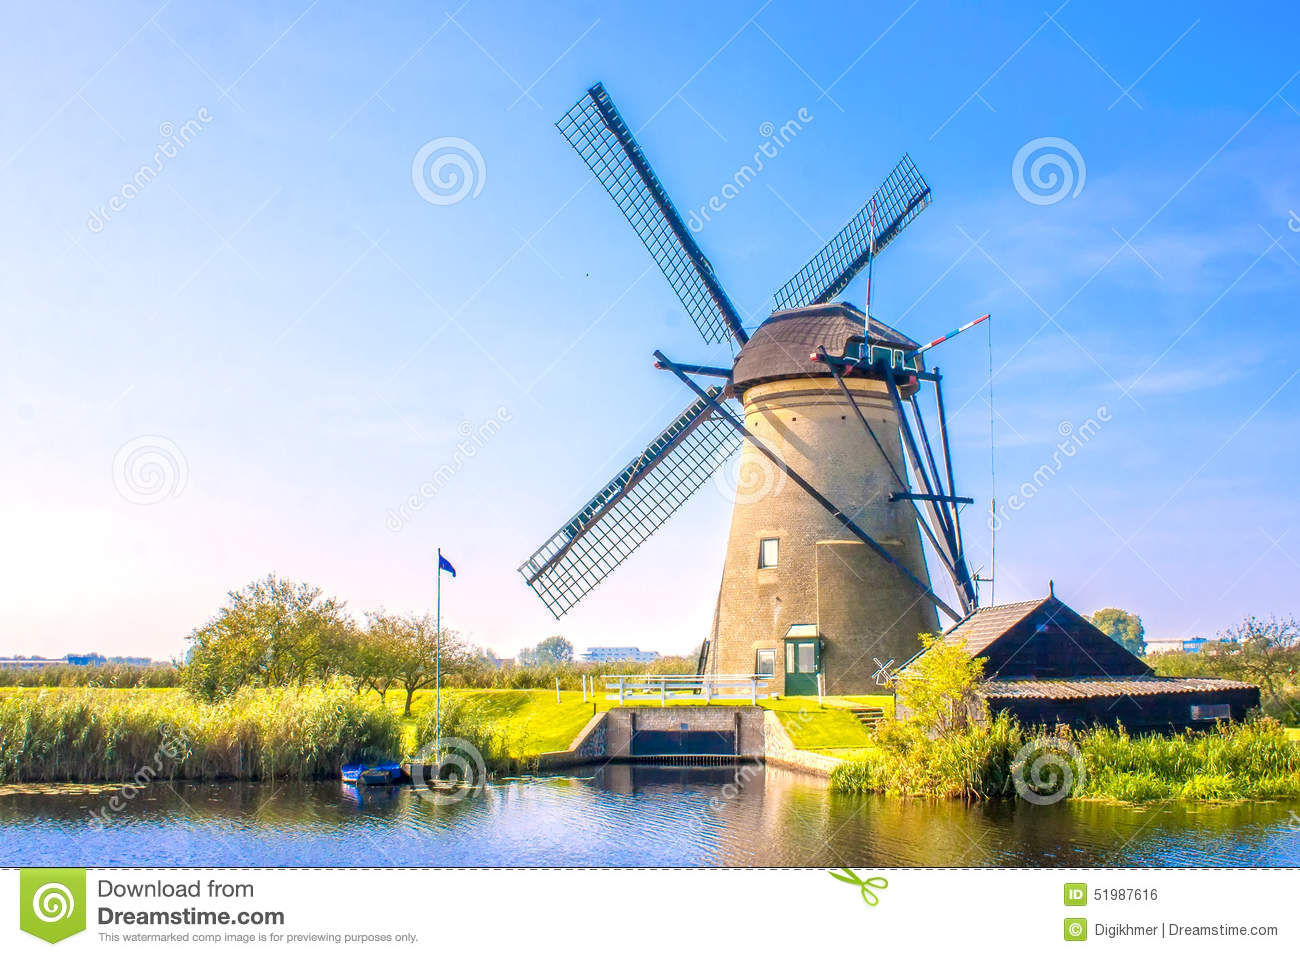 House and the Giant of Netherlands